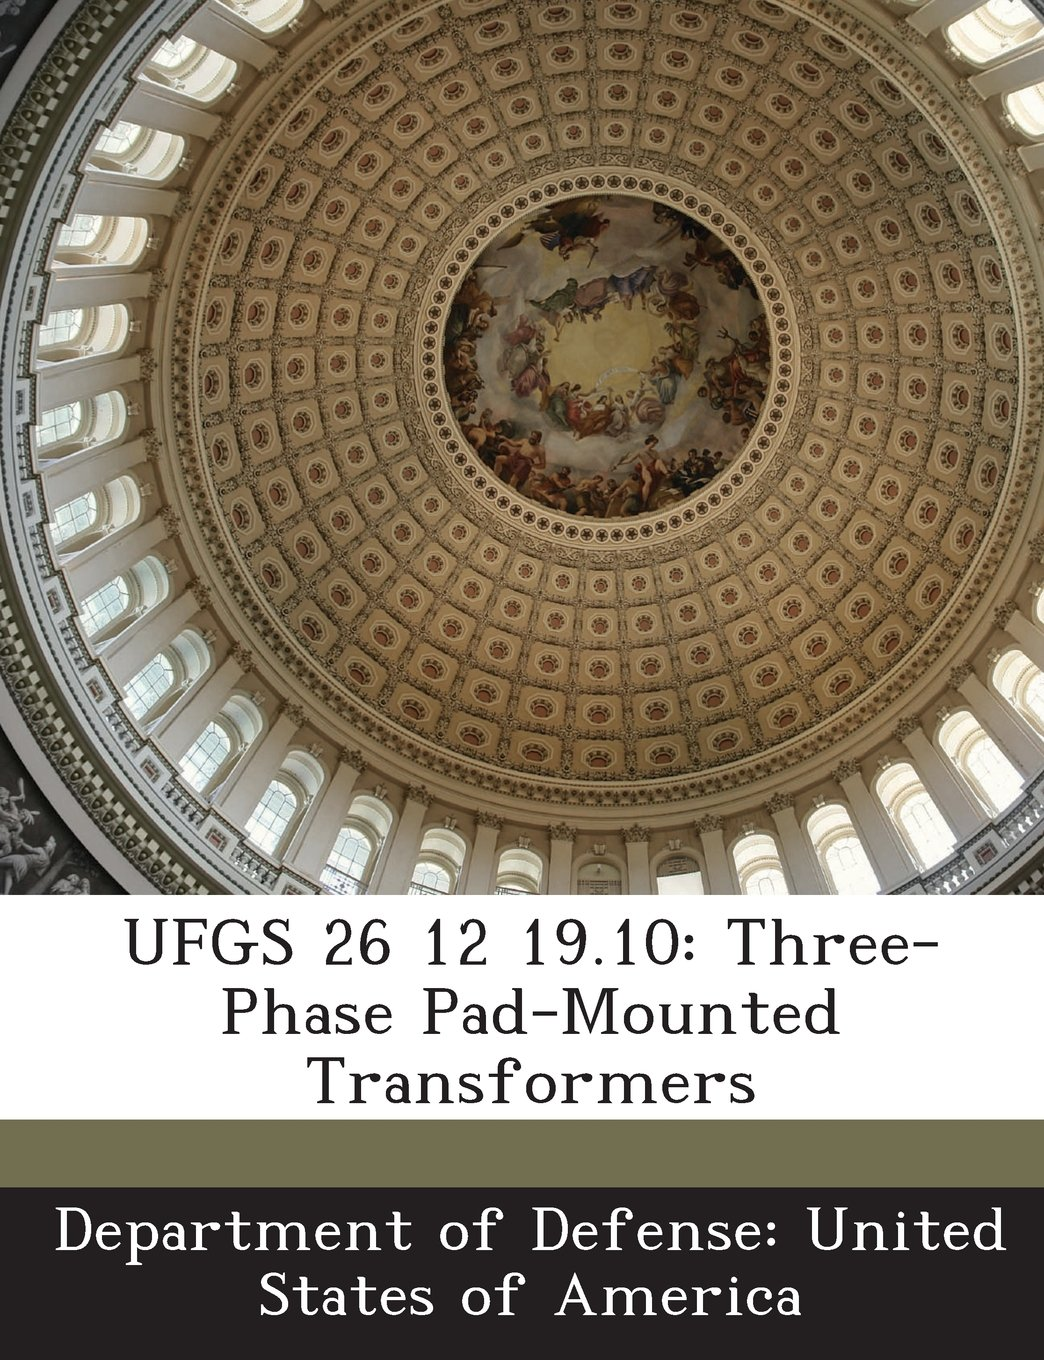 Buy Ufgs 26 12 19 10: Three-Phase Pad-Mounted Transformers